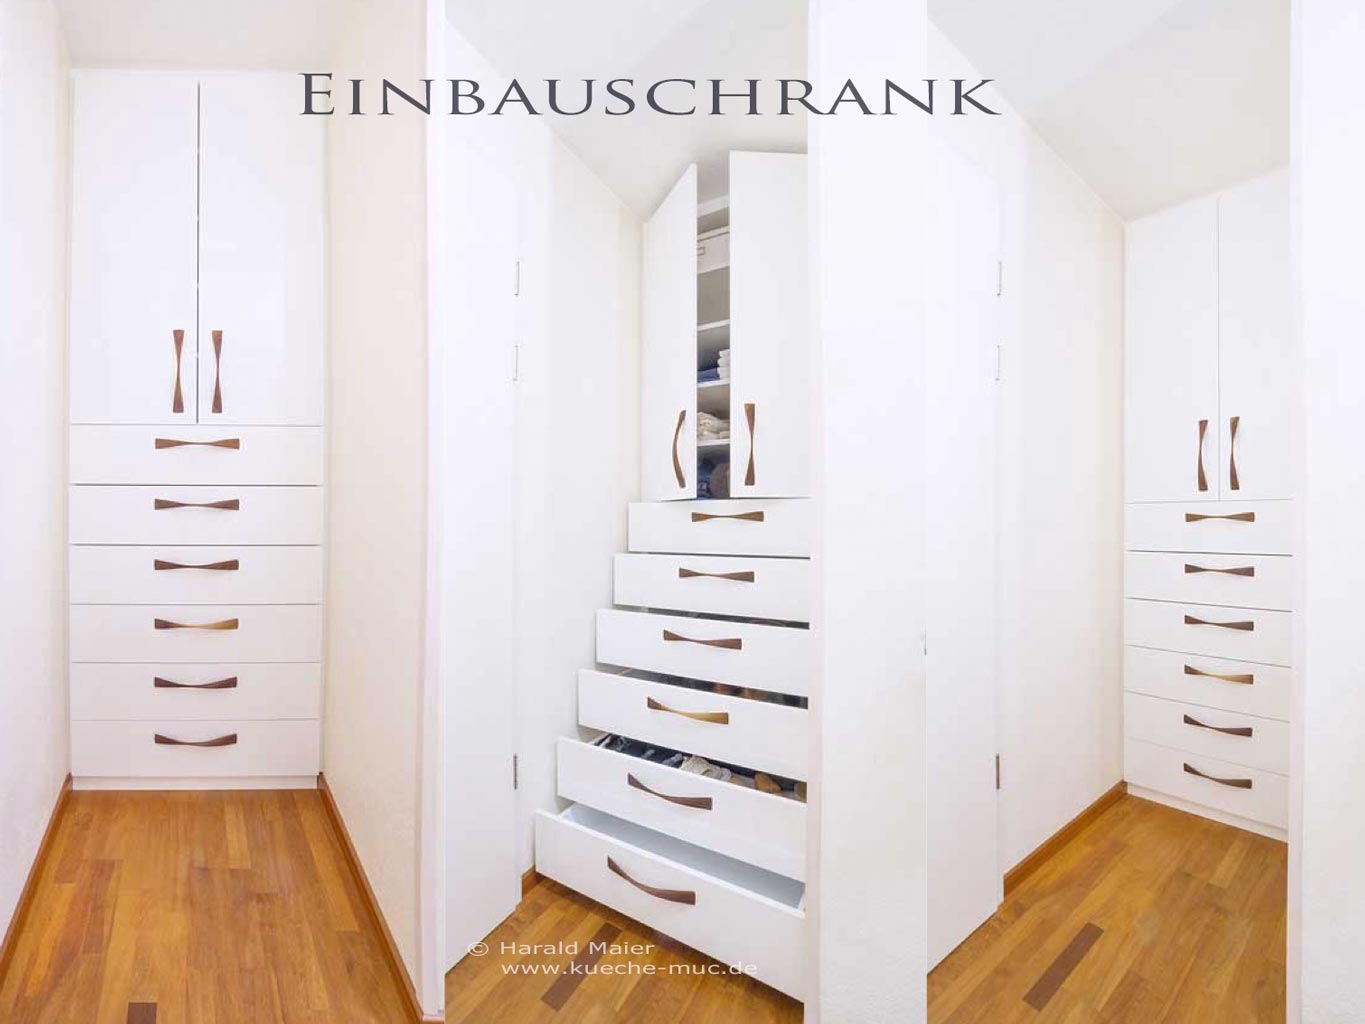 einbauschrank f r kueche esszimmer waschmaschine und. Black Bedroom Furniture Sets. Home Design Ideas